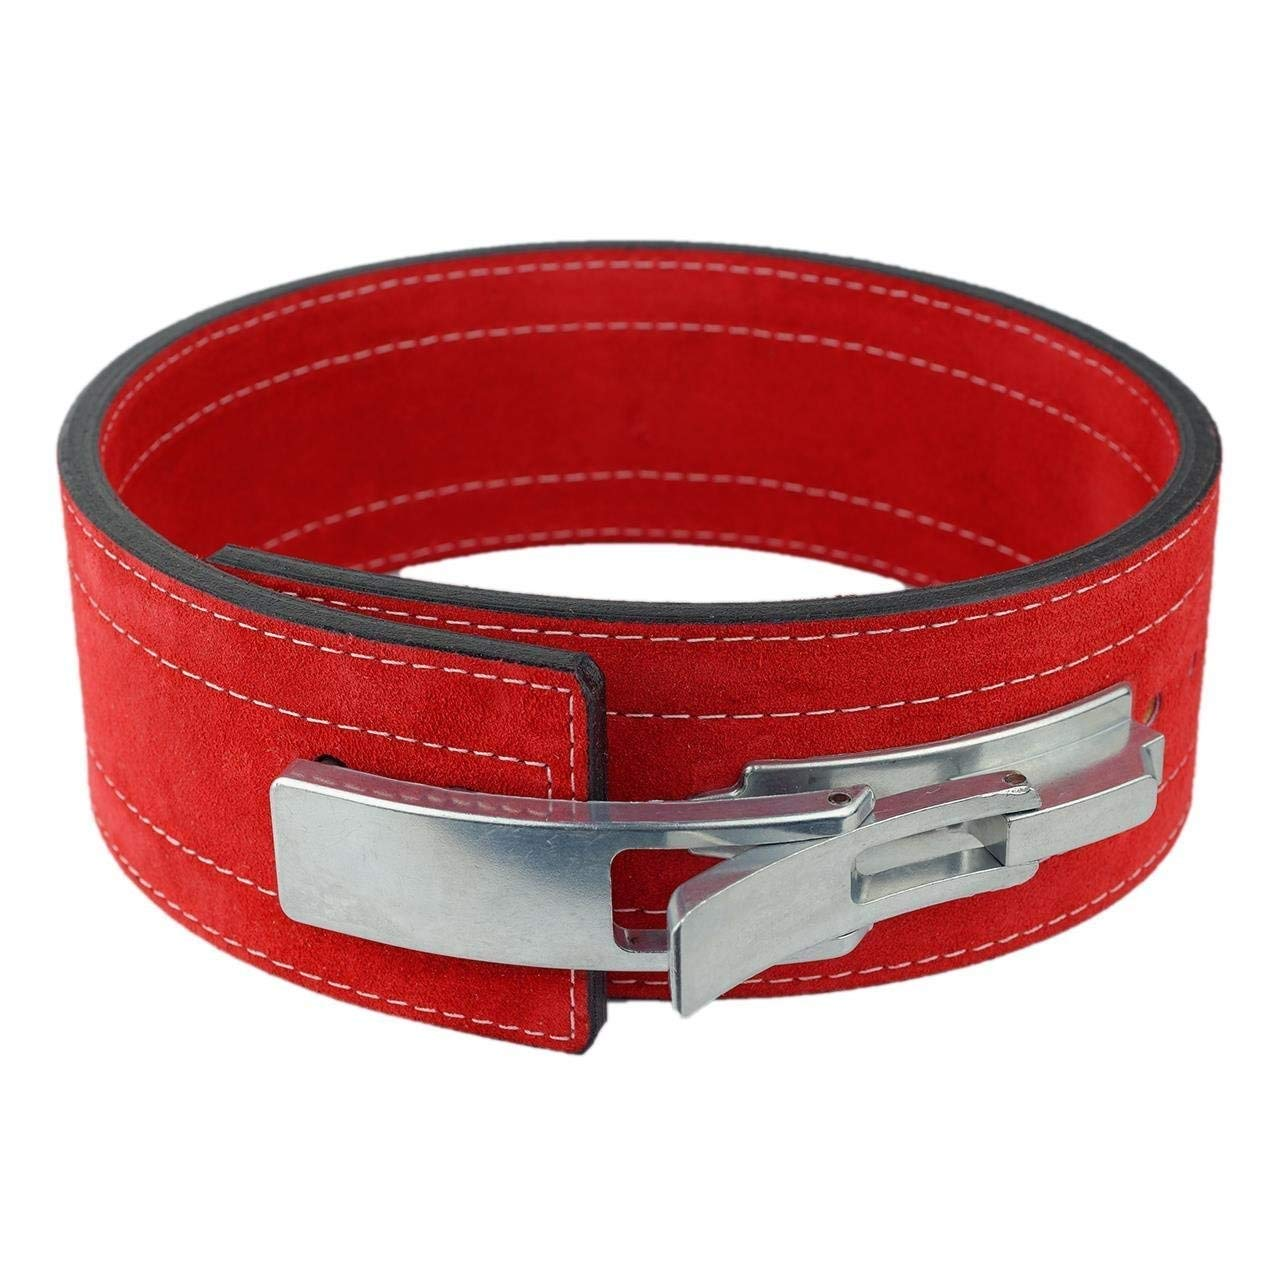 6ed0c06e866 Amazon.com   Inzer Advance Designs Forever Lever Belt 10MM   Sports    Outdoors